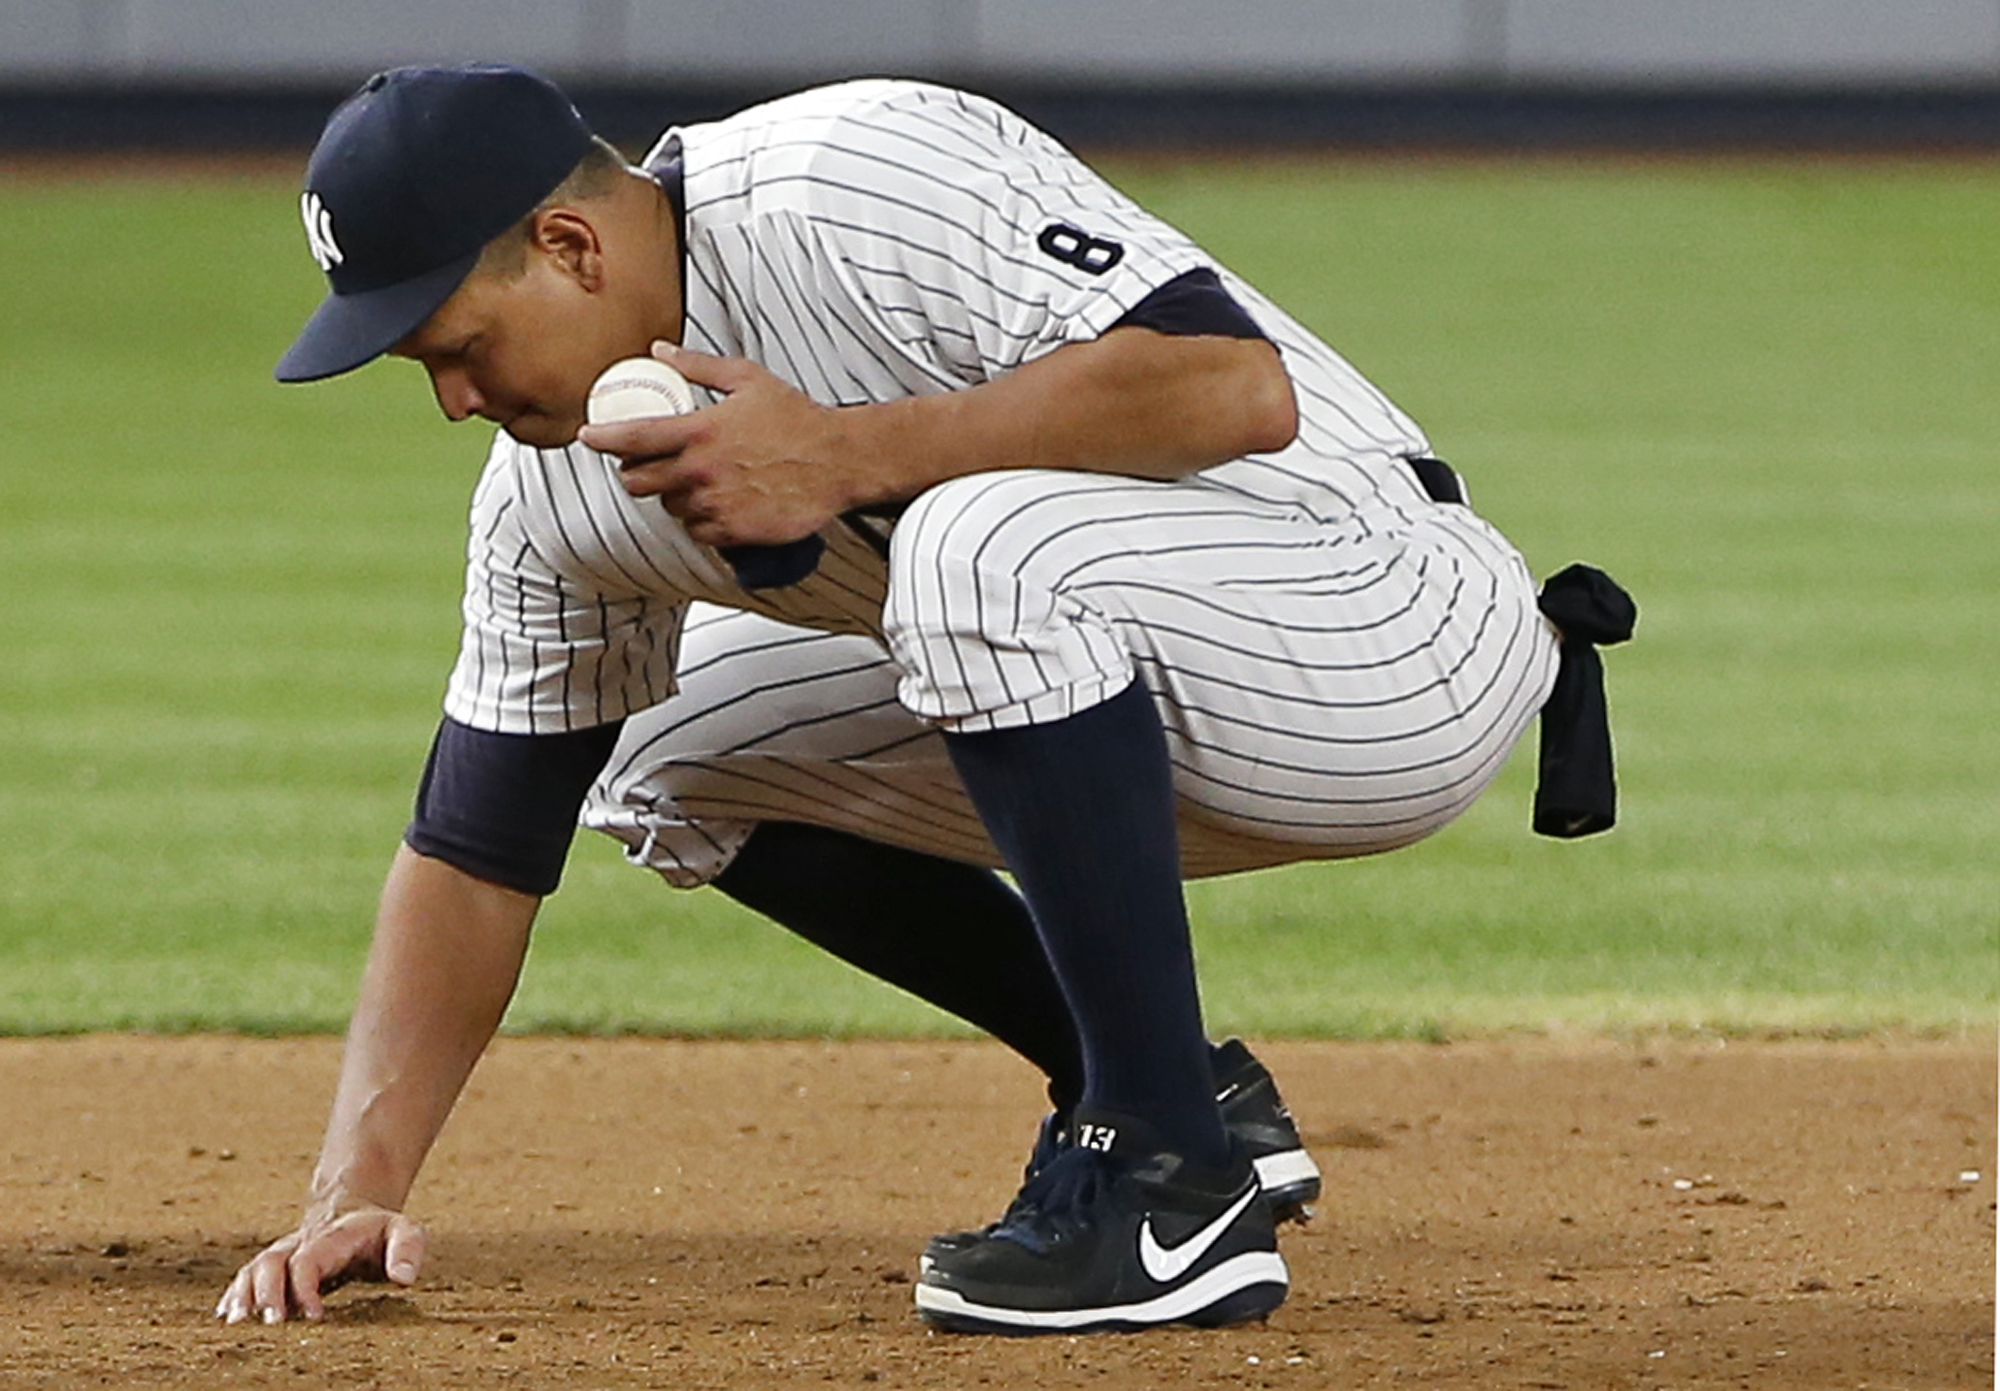 New York Yankees designated hitter Alex Rodriguez gathers dirt from the field near third base in his final game as a Yankee, at Yankee Stadium in New York, Friday, Aug. 12, 2016. He played part of the ninth inning at third base. The Yankees defeated the T